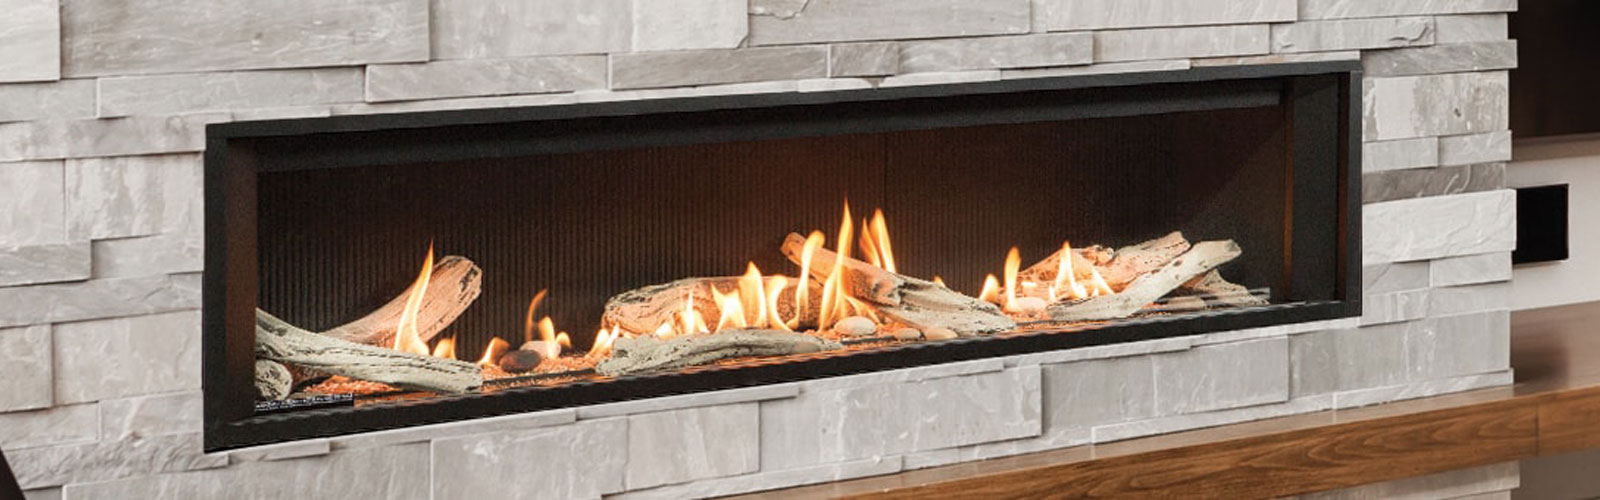 gas fireplace repairs cleaning metro city service group